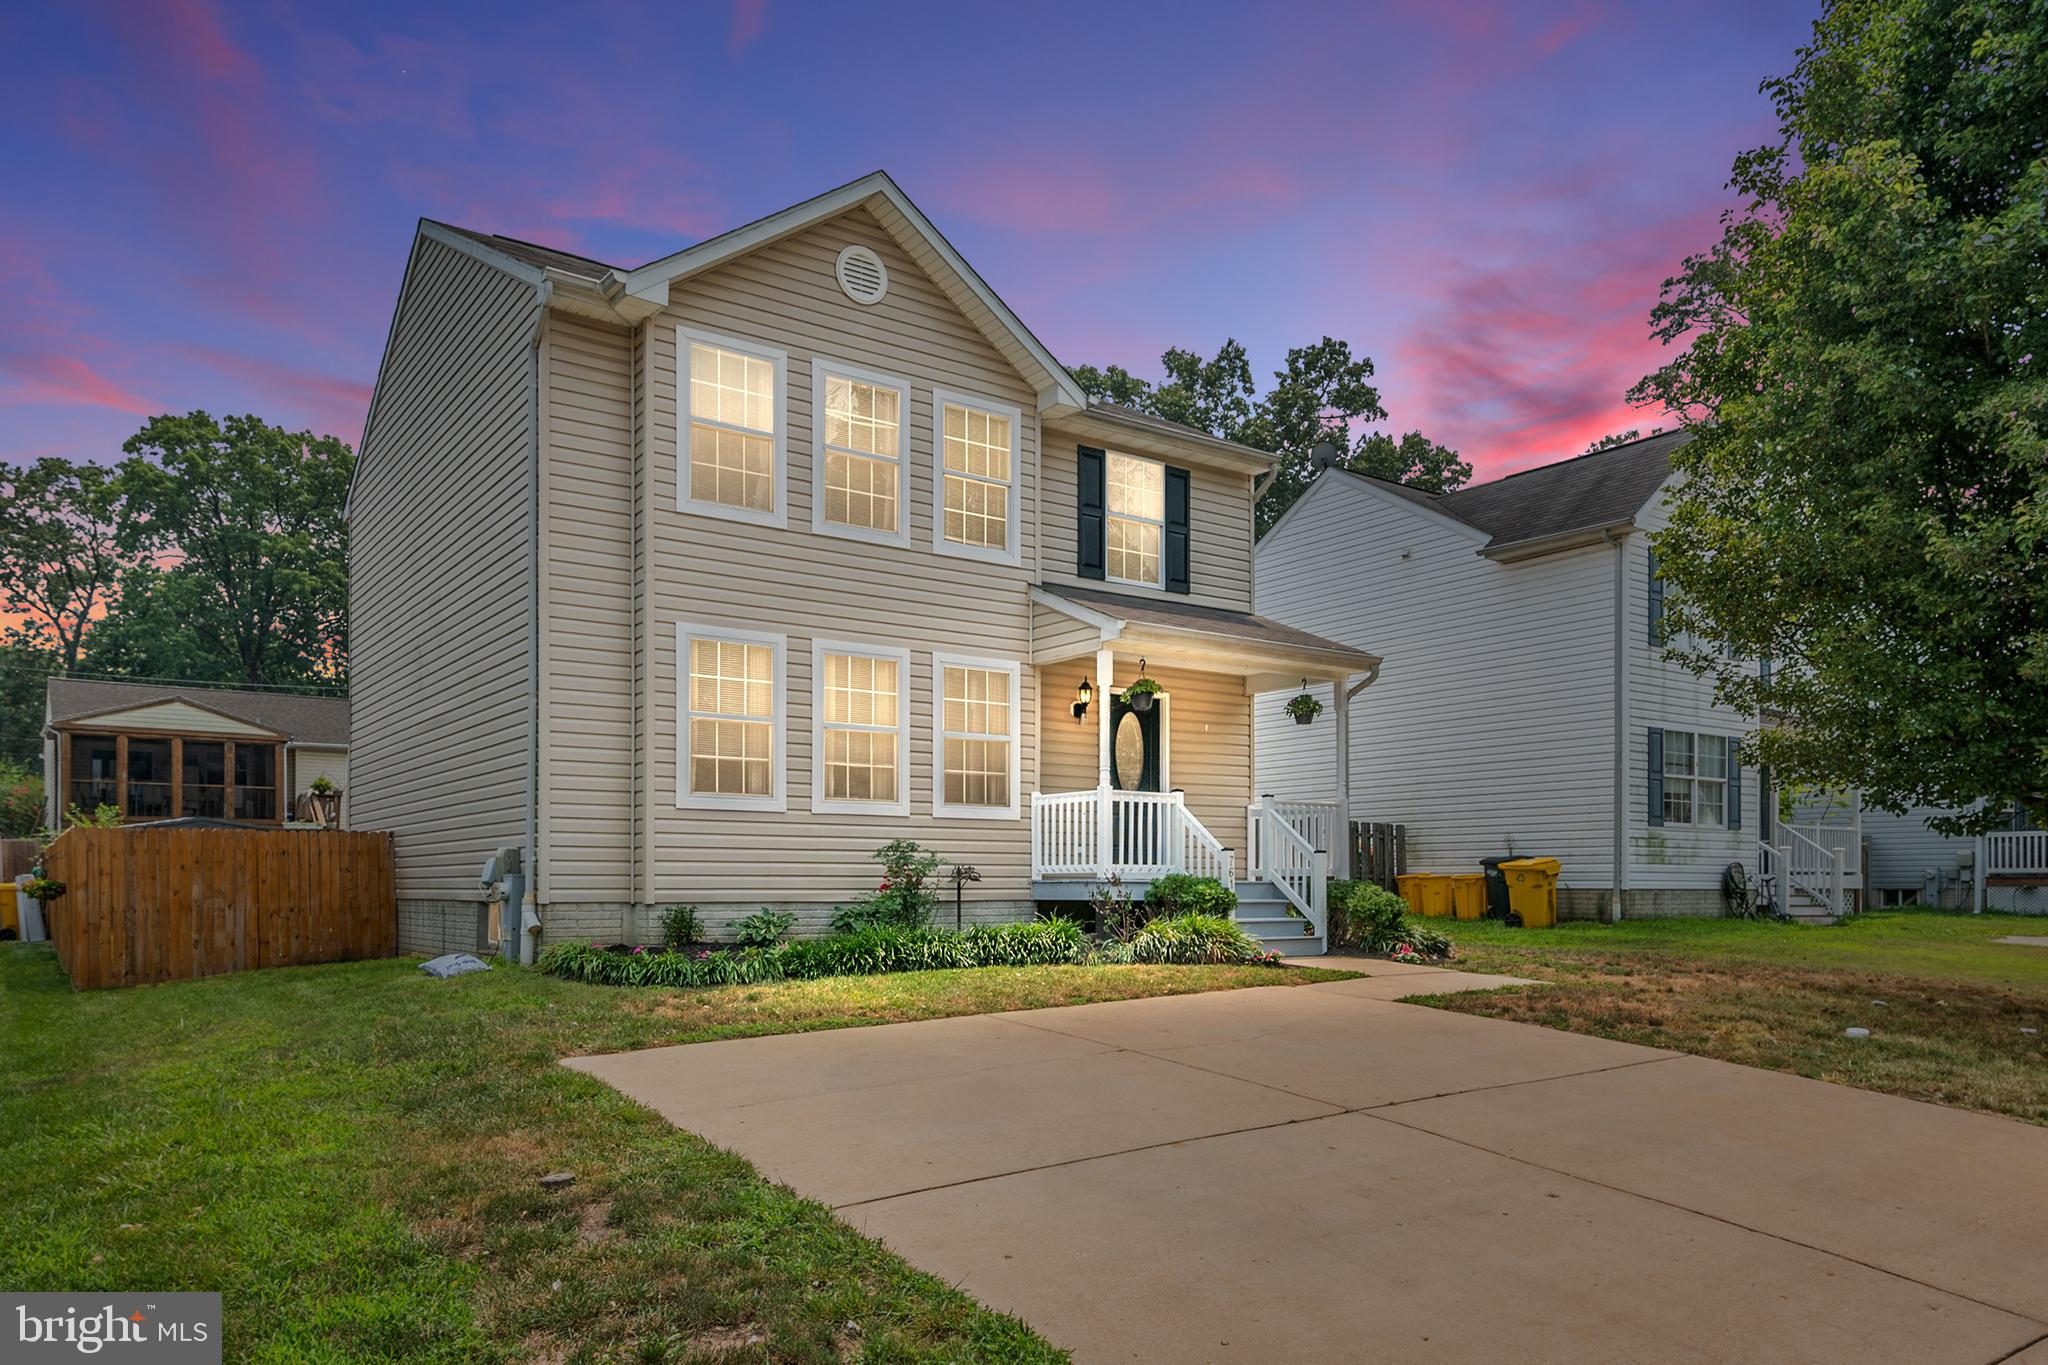 4 Bedroom and 3 1/2 bathroom, updated and well maintained home in Green Haven. Come and enjoy this m